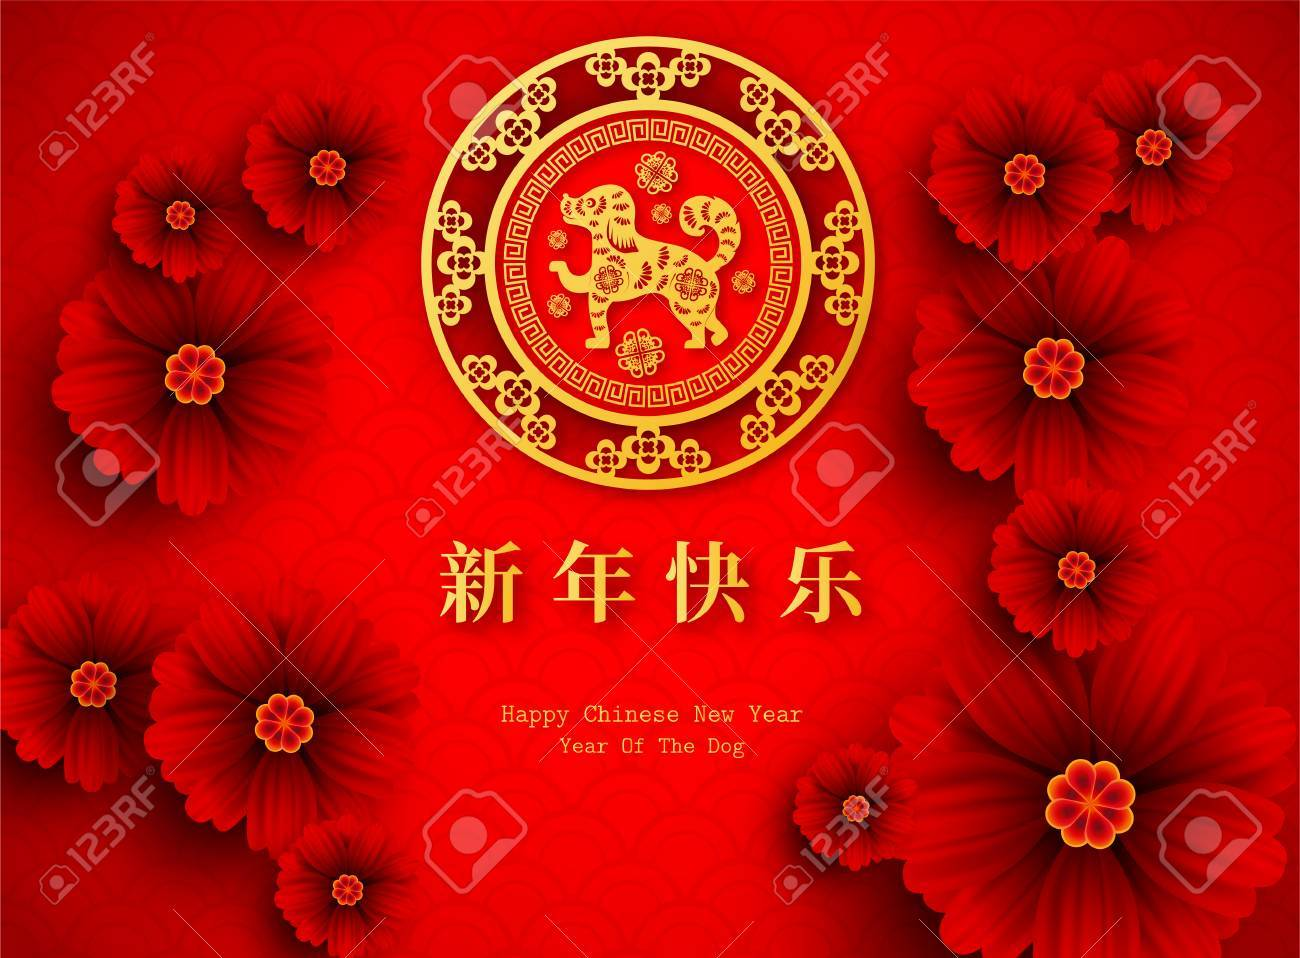 Greeting Cards Chinese New Year Forteforic